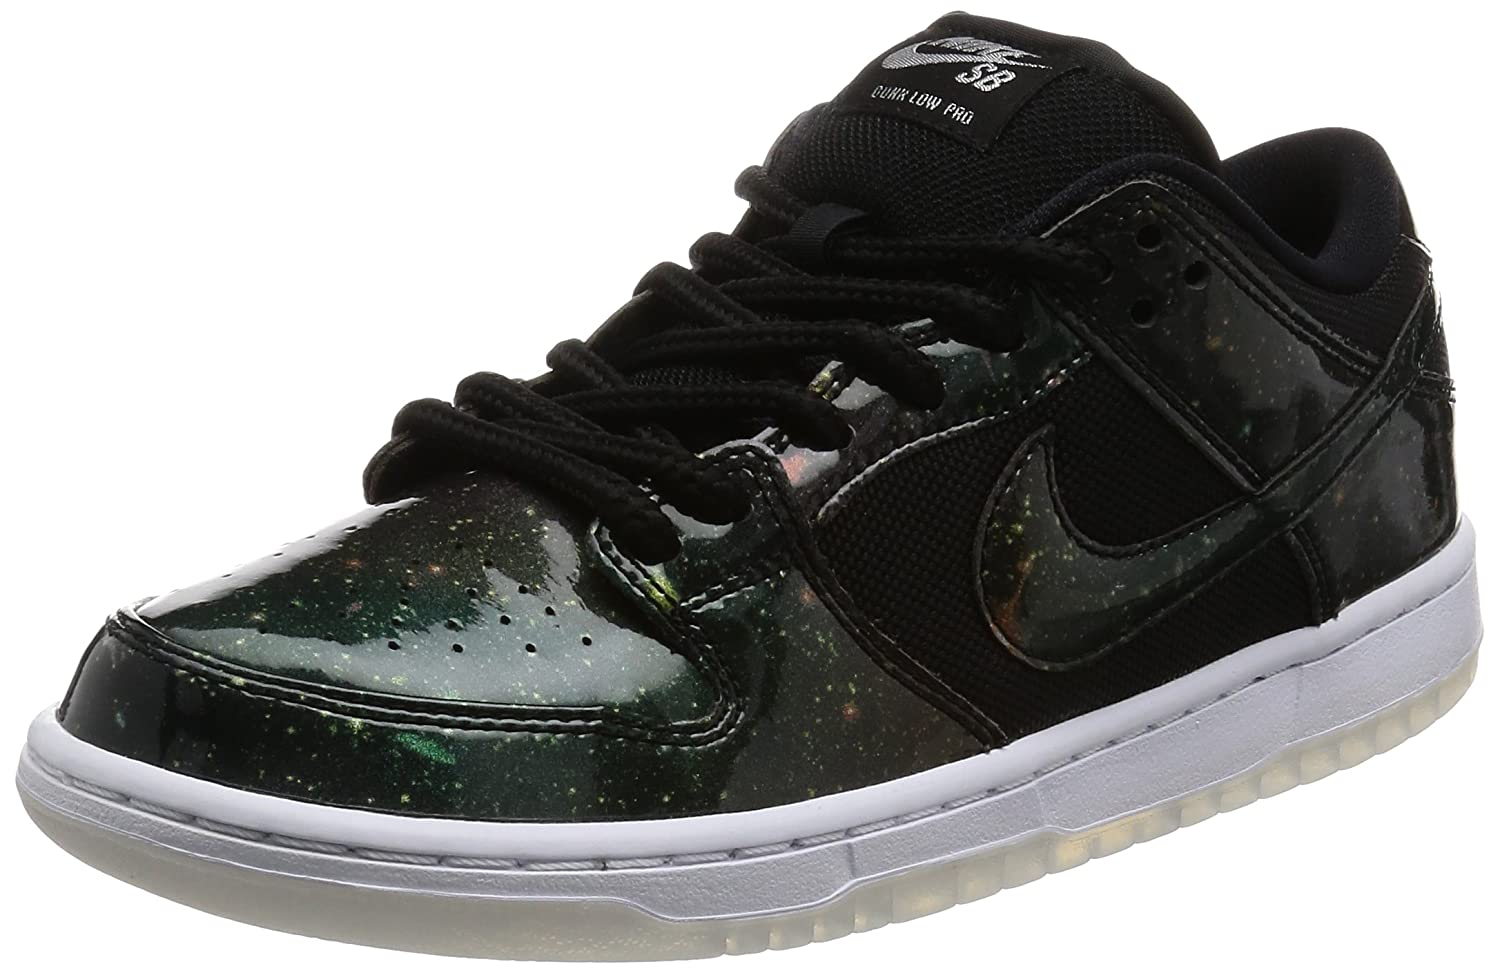 47170c99c13f5 Nike Dunk Low Pro Iw